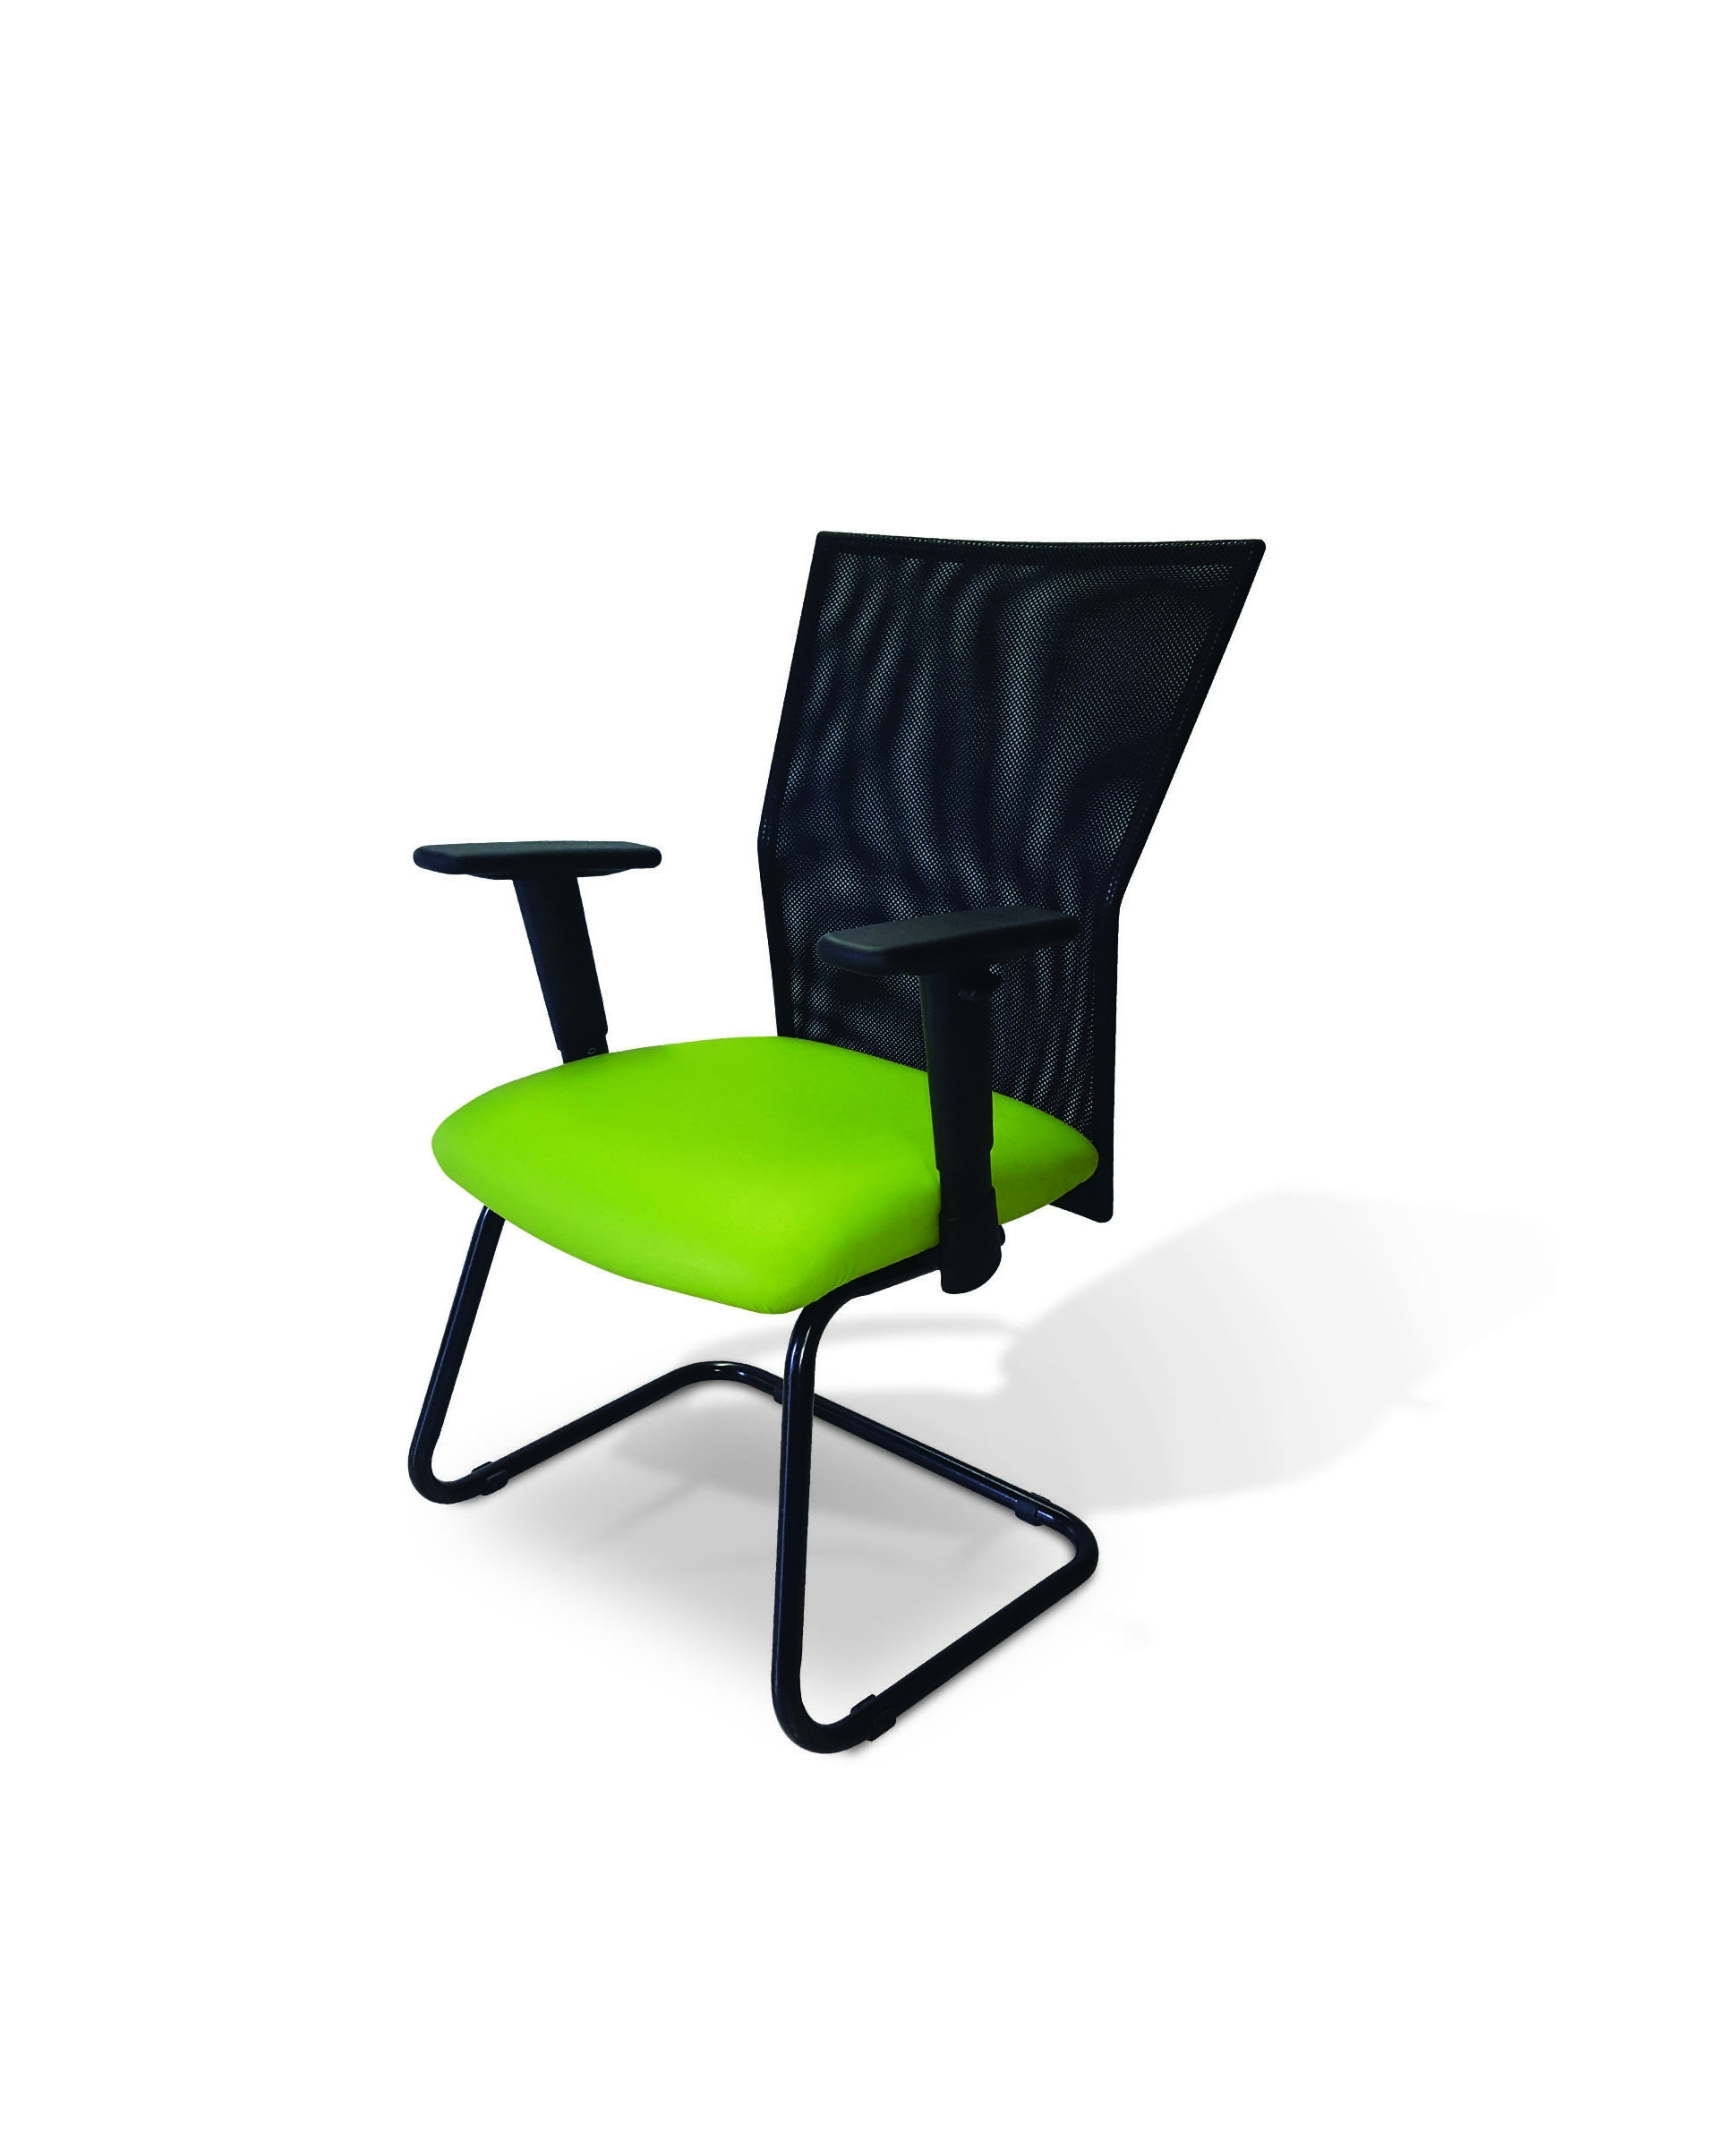 Widely Used Swift Mesh Visitor Chair For Sale In Johannesburg (View 11 of 20)